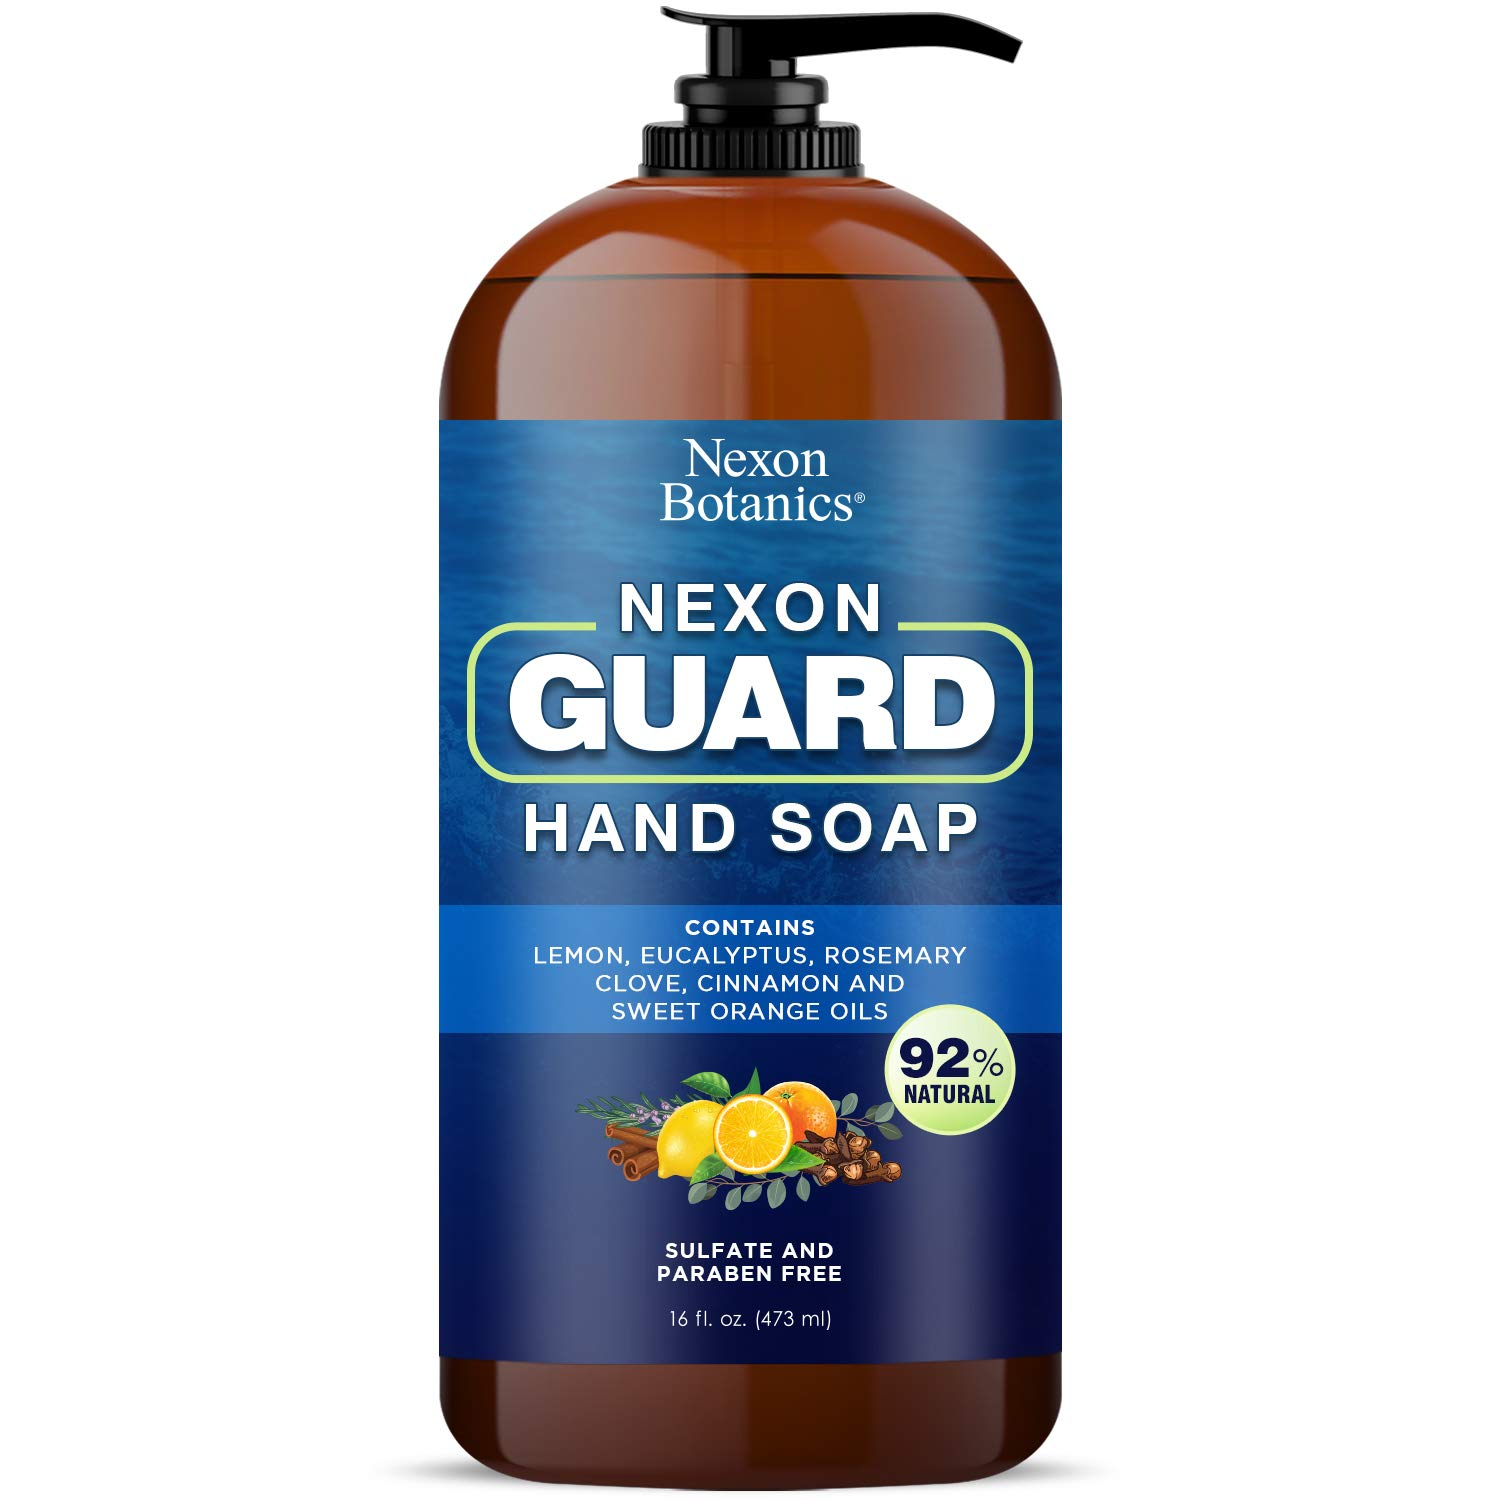 Nexon Botanics Robbers Guard Hand Soap 16 fl oz - Made in USA - Based on French Thieves Formula - Deep Cleansing and Purifying Hand Wash - Gentle and Moisturizing - Liquid Hand Soap : Beauty